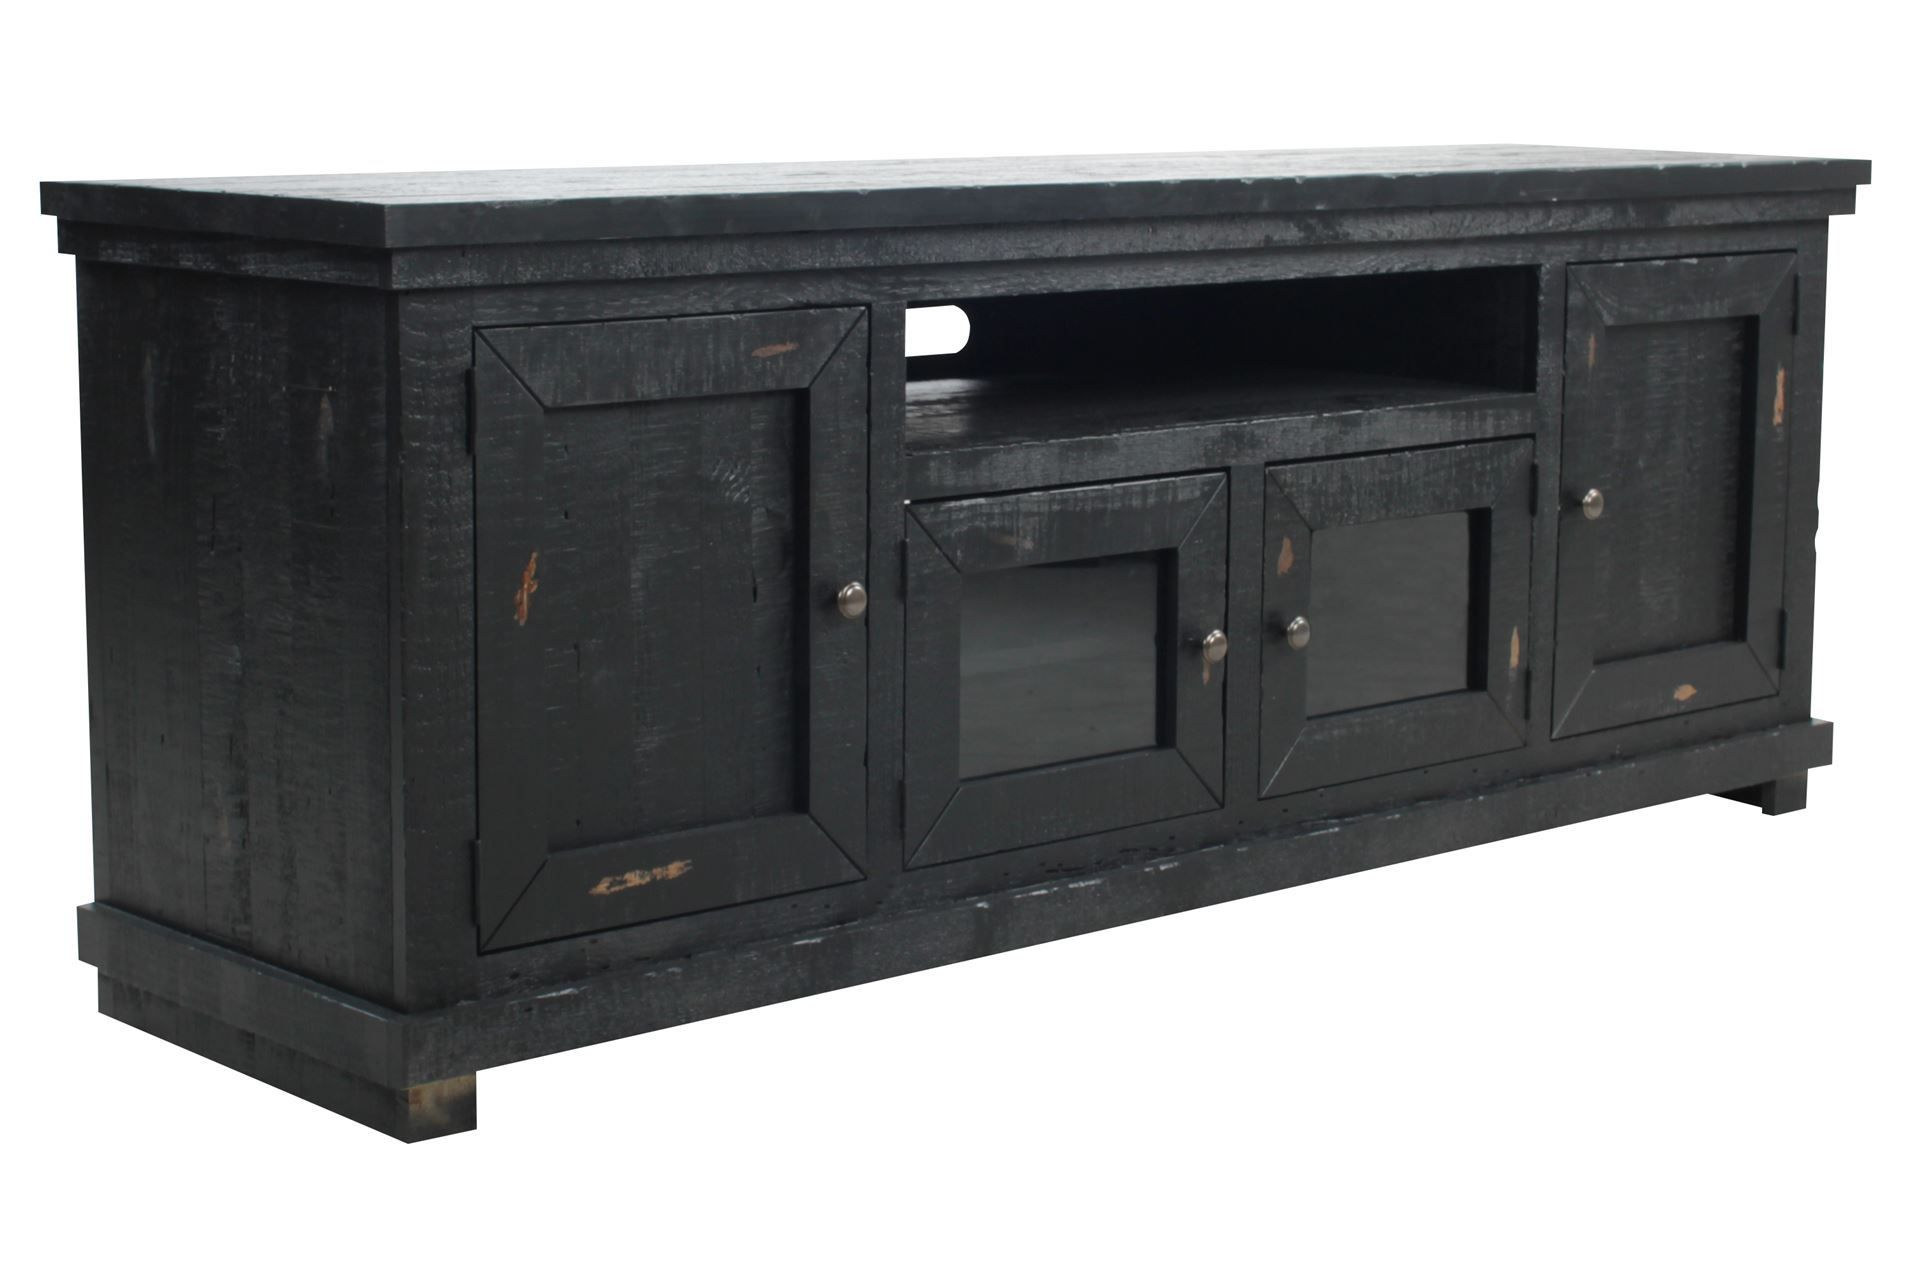 Sinclair Black 74 Inch Tv Console – Signature | Home Design With Regard To Sinclair White 74 Inch Tv Stands (View 8 of 30)